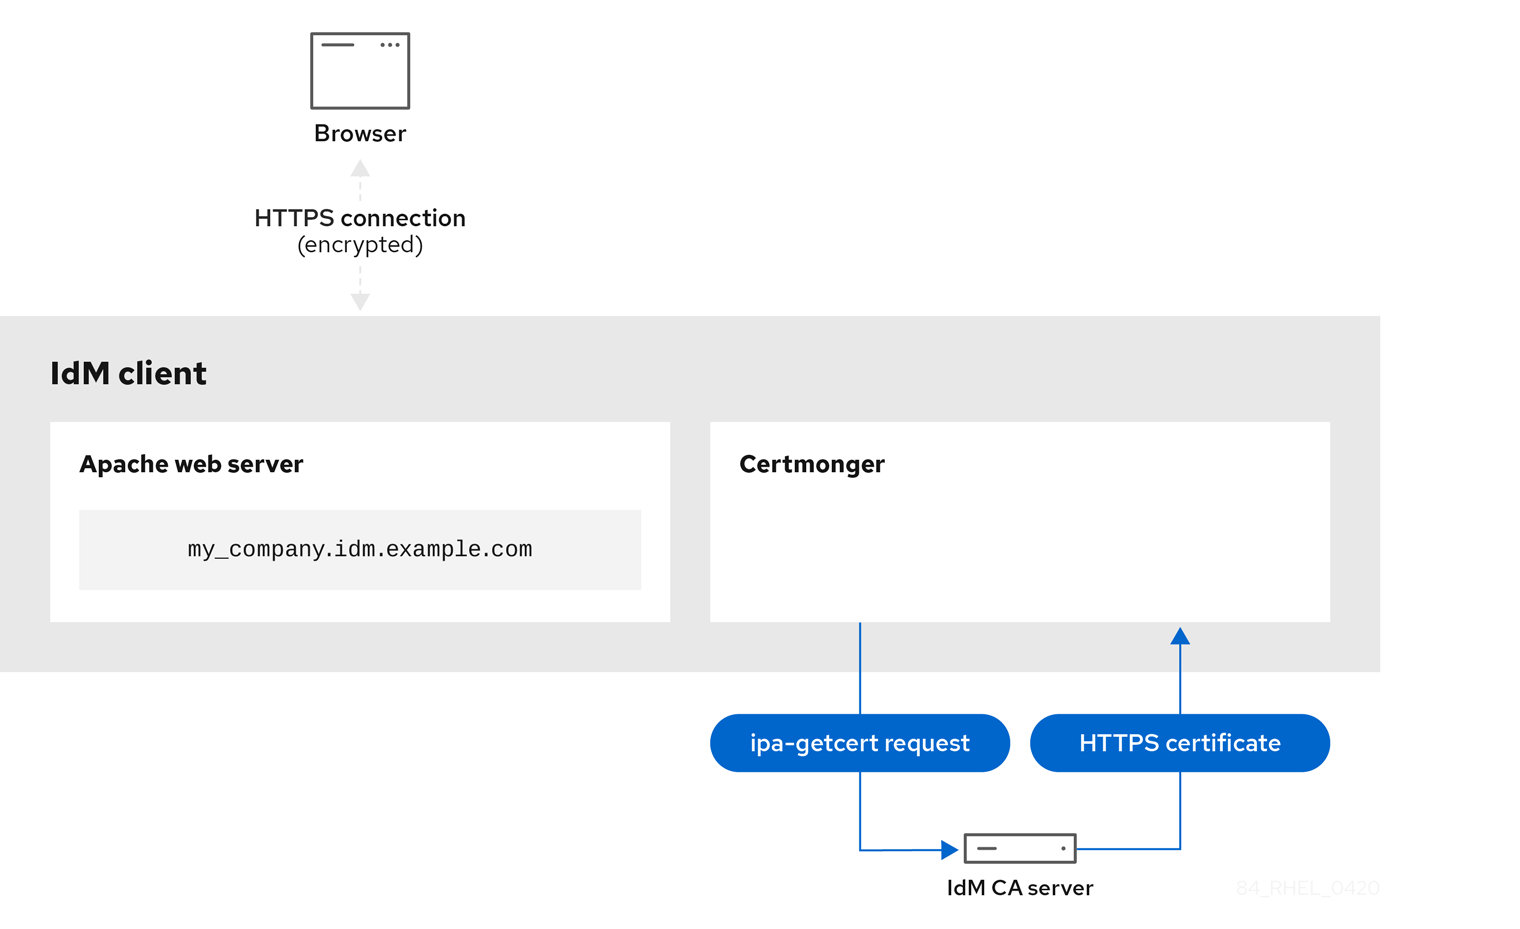 """A diagram displaying an arrow from the certmonger service on the IdM client connecting to the IdM CA server to show it is performing an ipa-getcert request. An arrow from the IdM CA server to the Certmonger is labeled """"HTTPS certificate"""" to show it is transferring an HTTPS certificate to the certmonger service."""